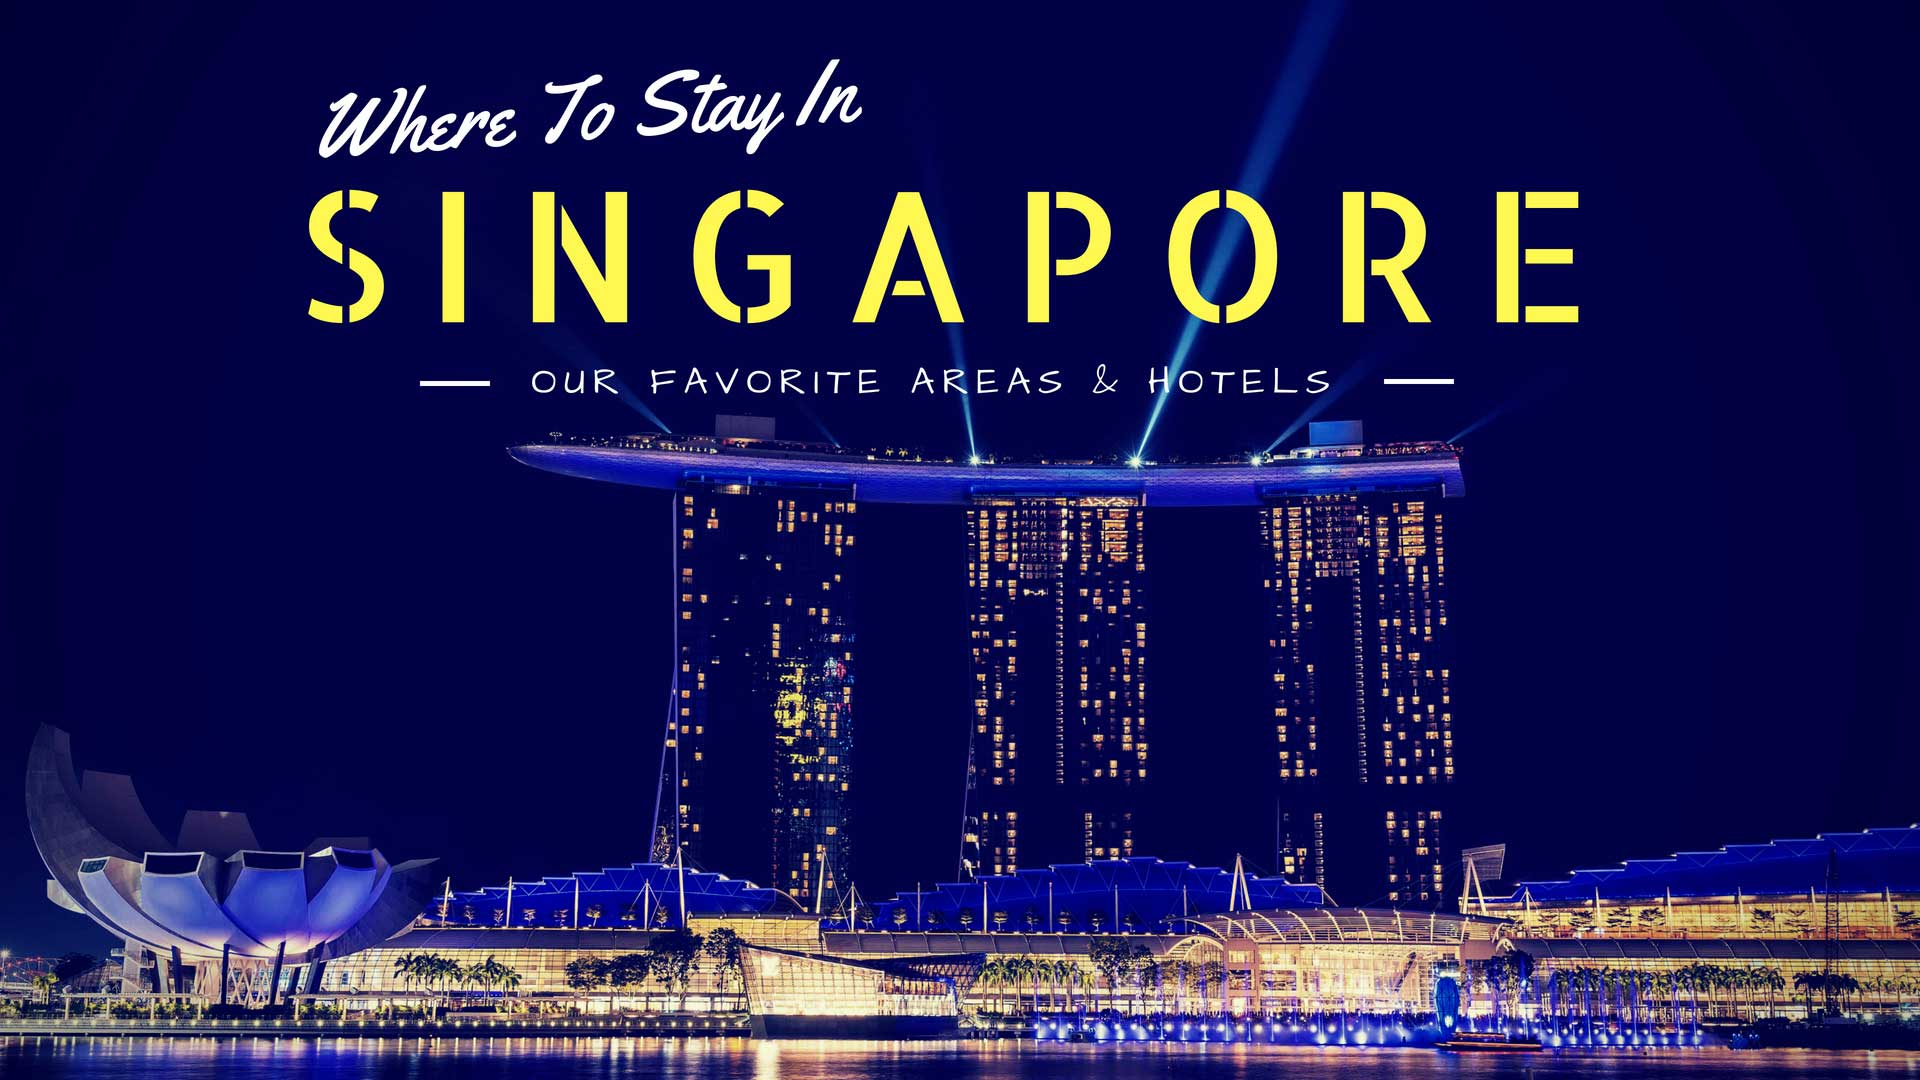 Where To Stay In Singapore Our Favorite Areas Hotels